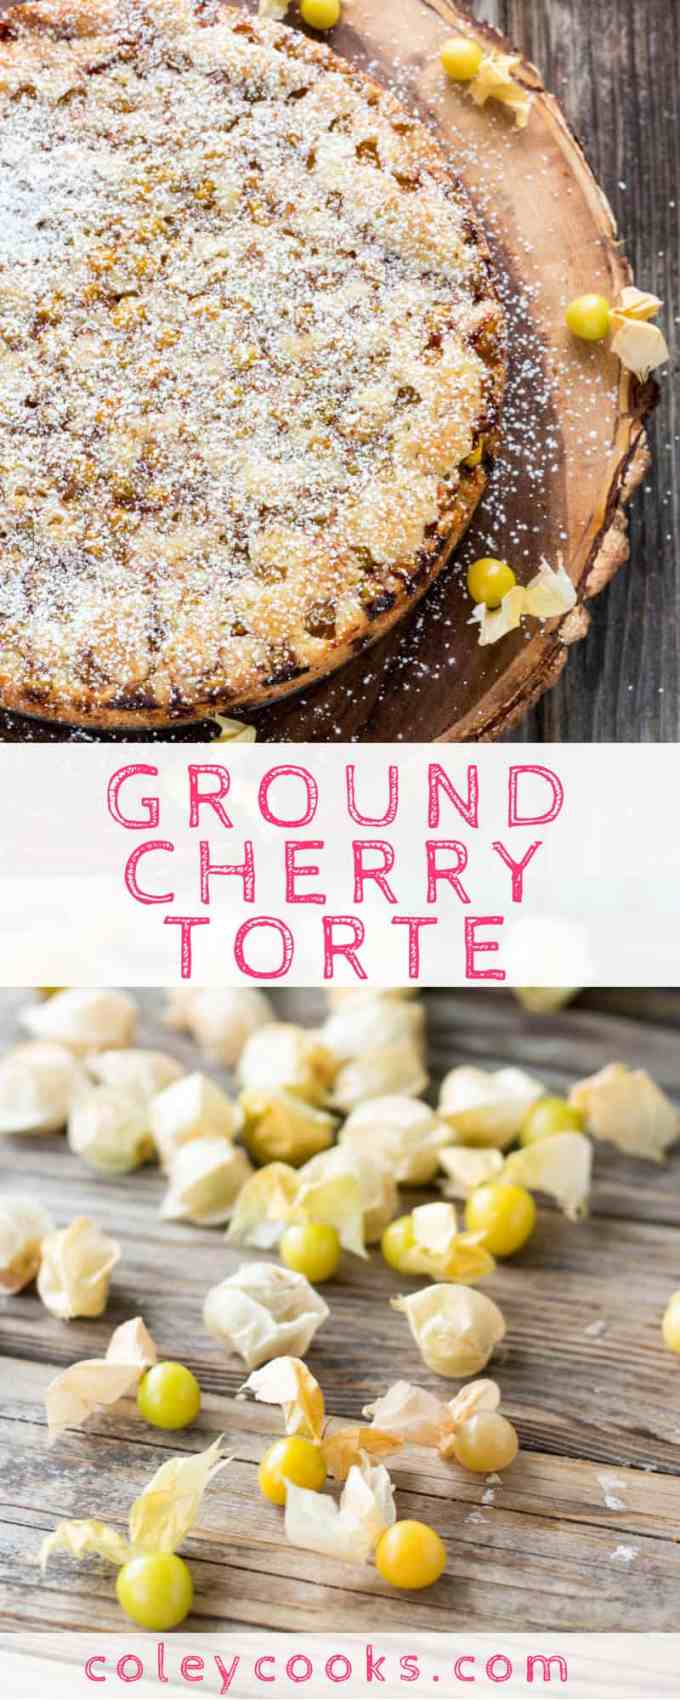 GROUND CHERRY TORTE | This easy cake recipe uses ground cherries aka husk cherries or gooseberries! It's dense and moist and absolutely delicious #easy #groundcherries #gooseberries #cake #recipe | ColeyCooks.com